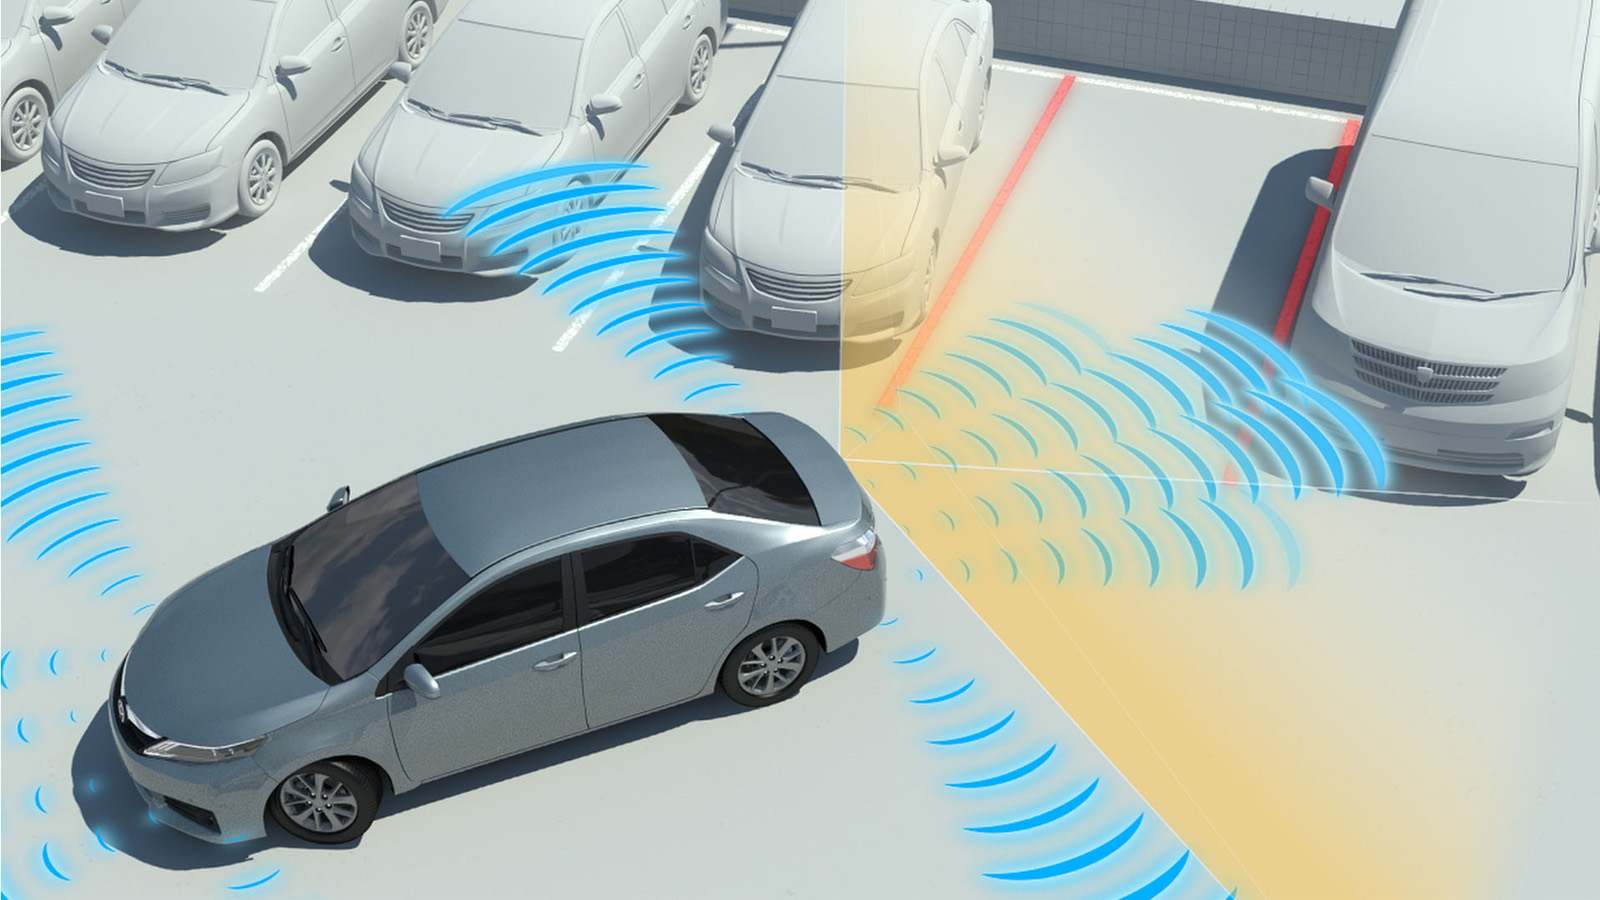 Toyota to Launch Enhanced Parking Support Systems